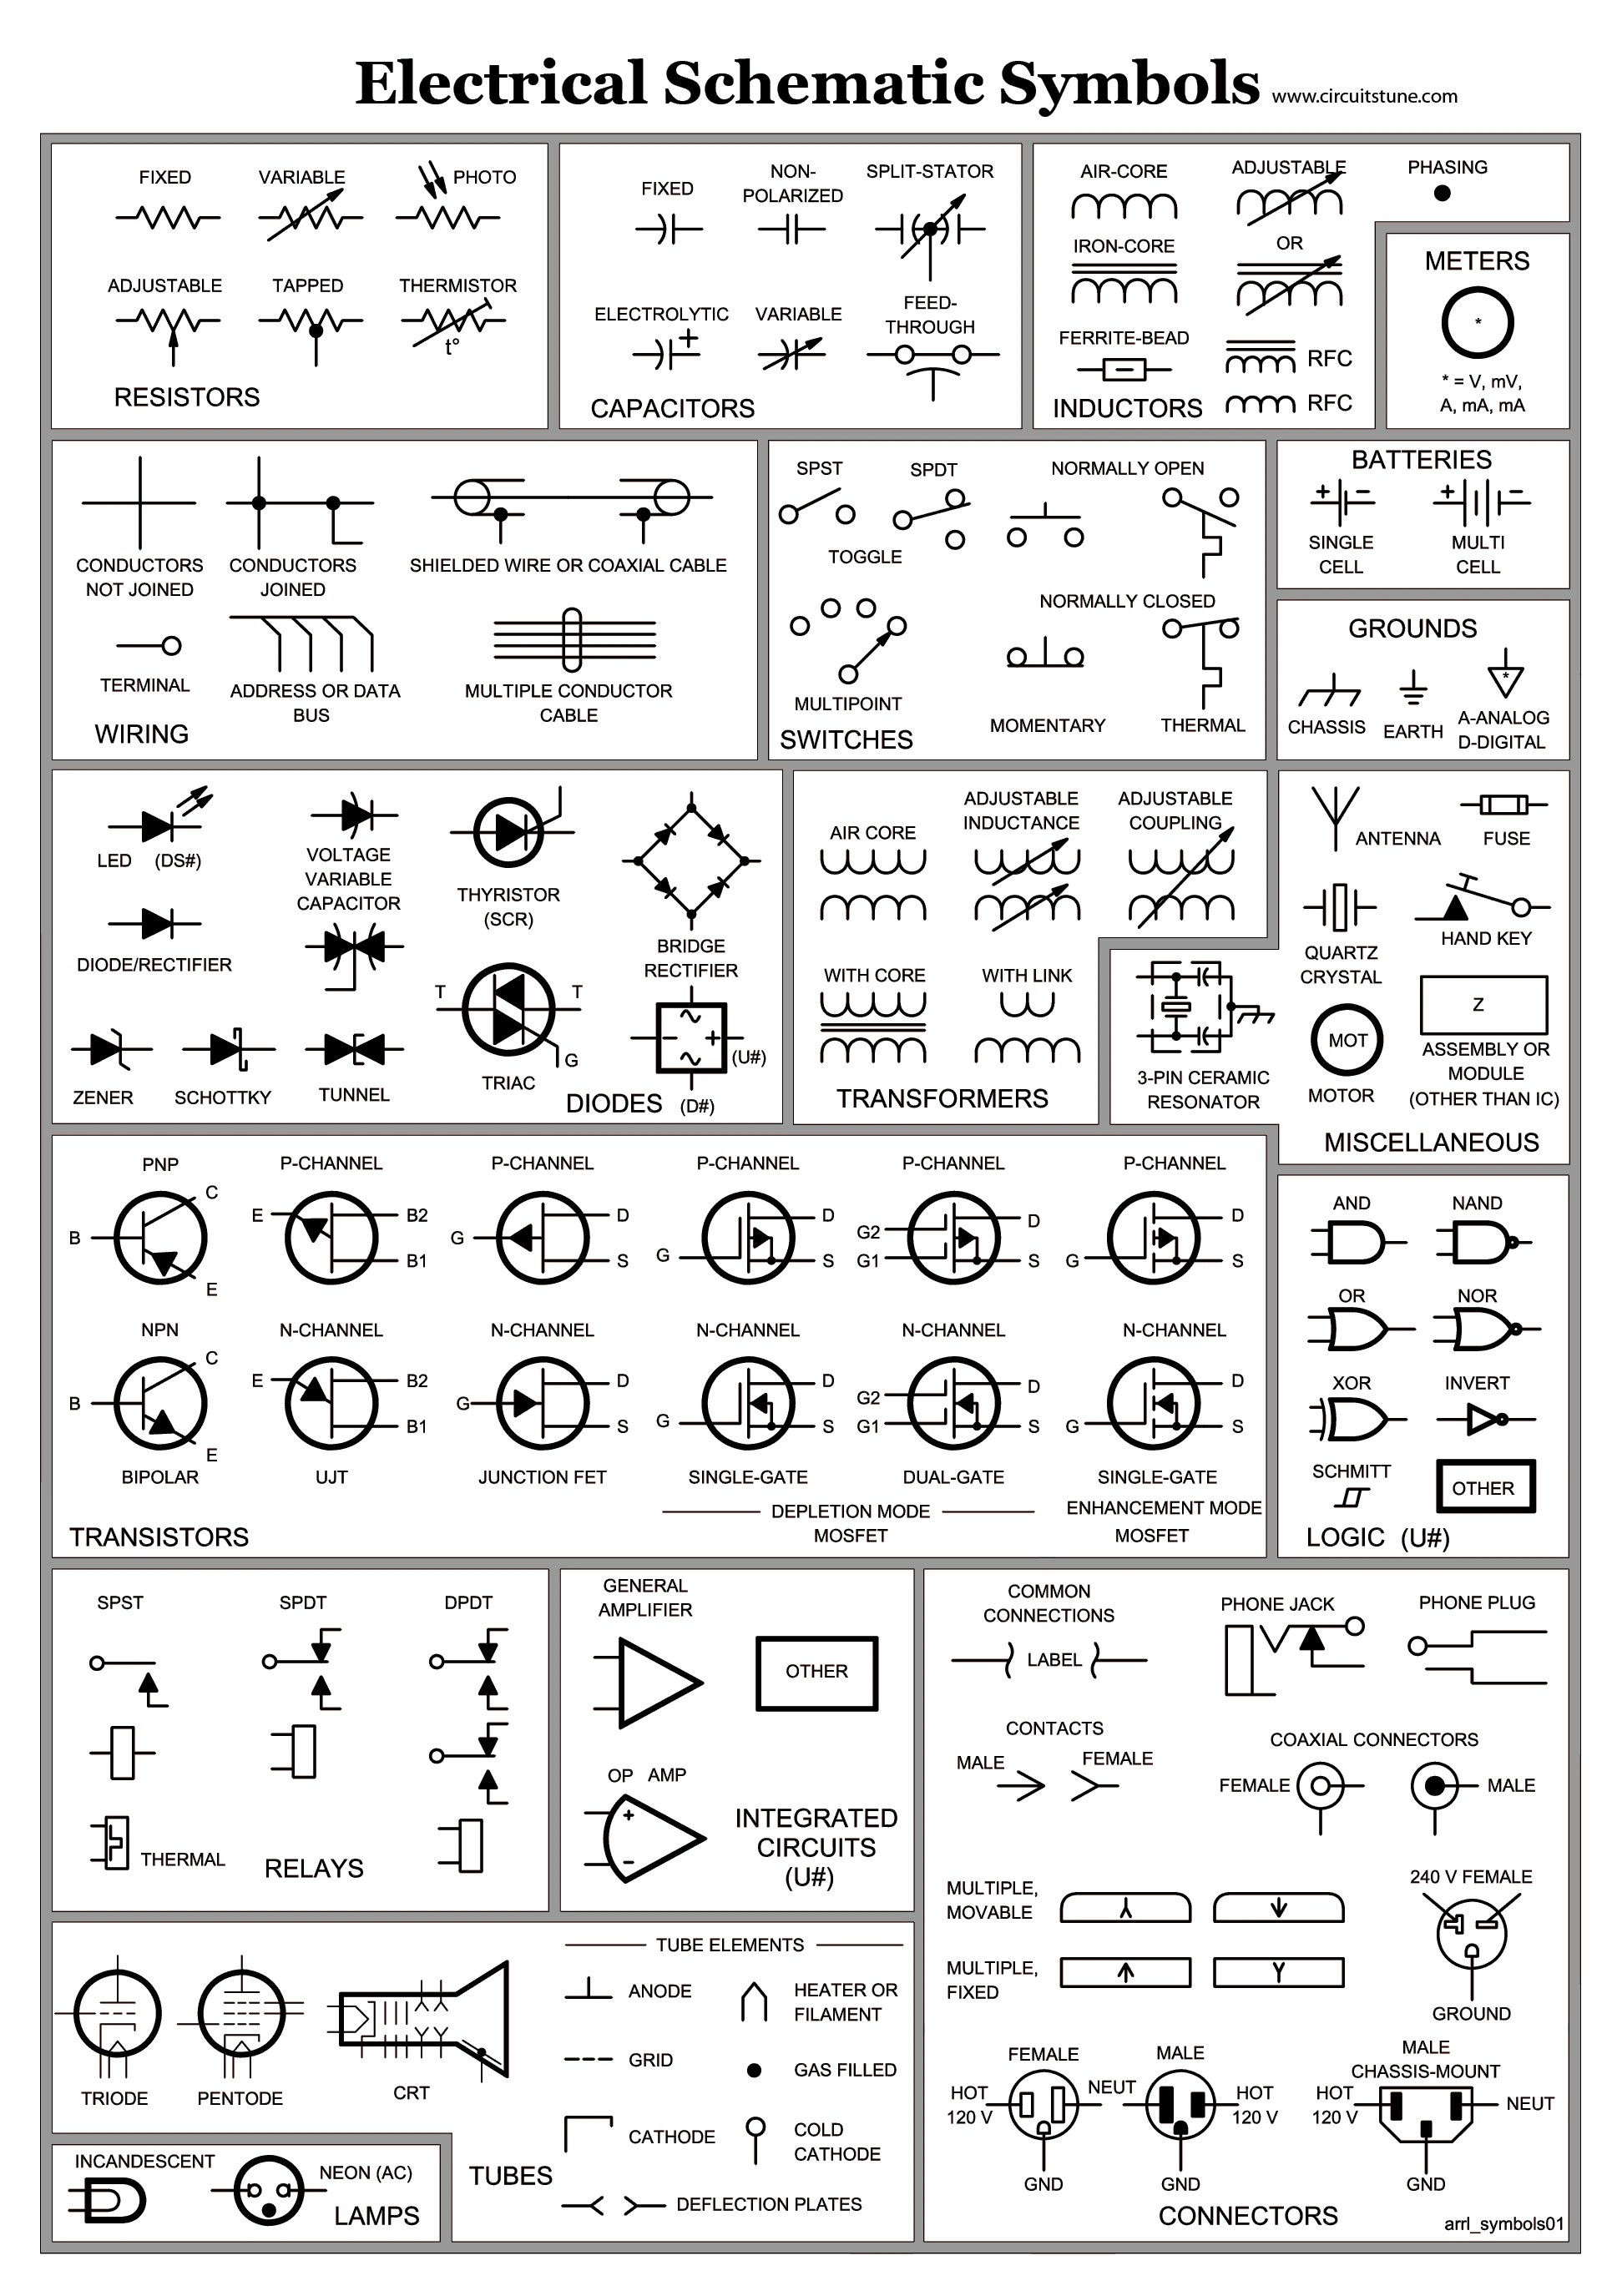 small resolution of circuit schematic symbols bmet wiki fandom powered by wikia electrical schematic diagram symbols on electrical circuit schematic